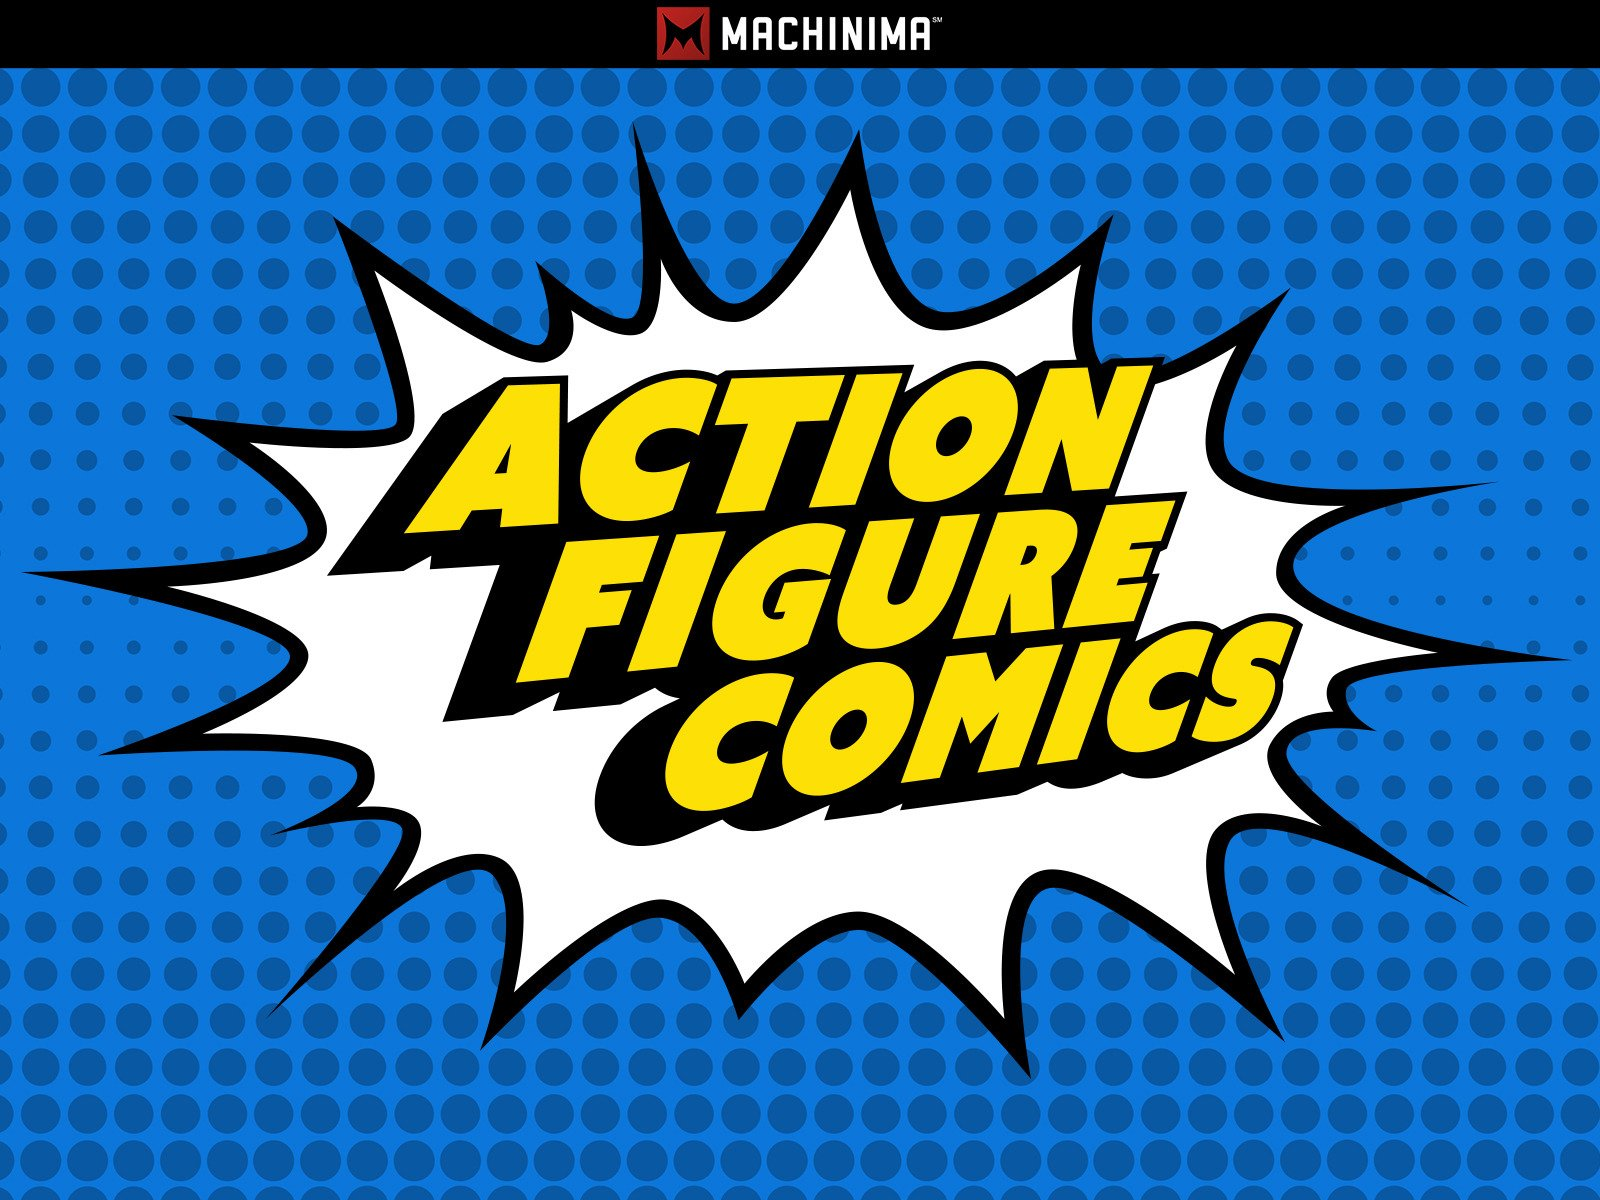 Action Figure Comics - Season 1